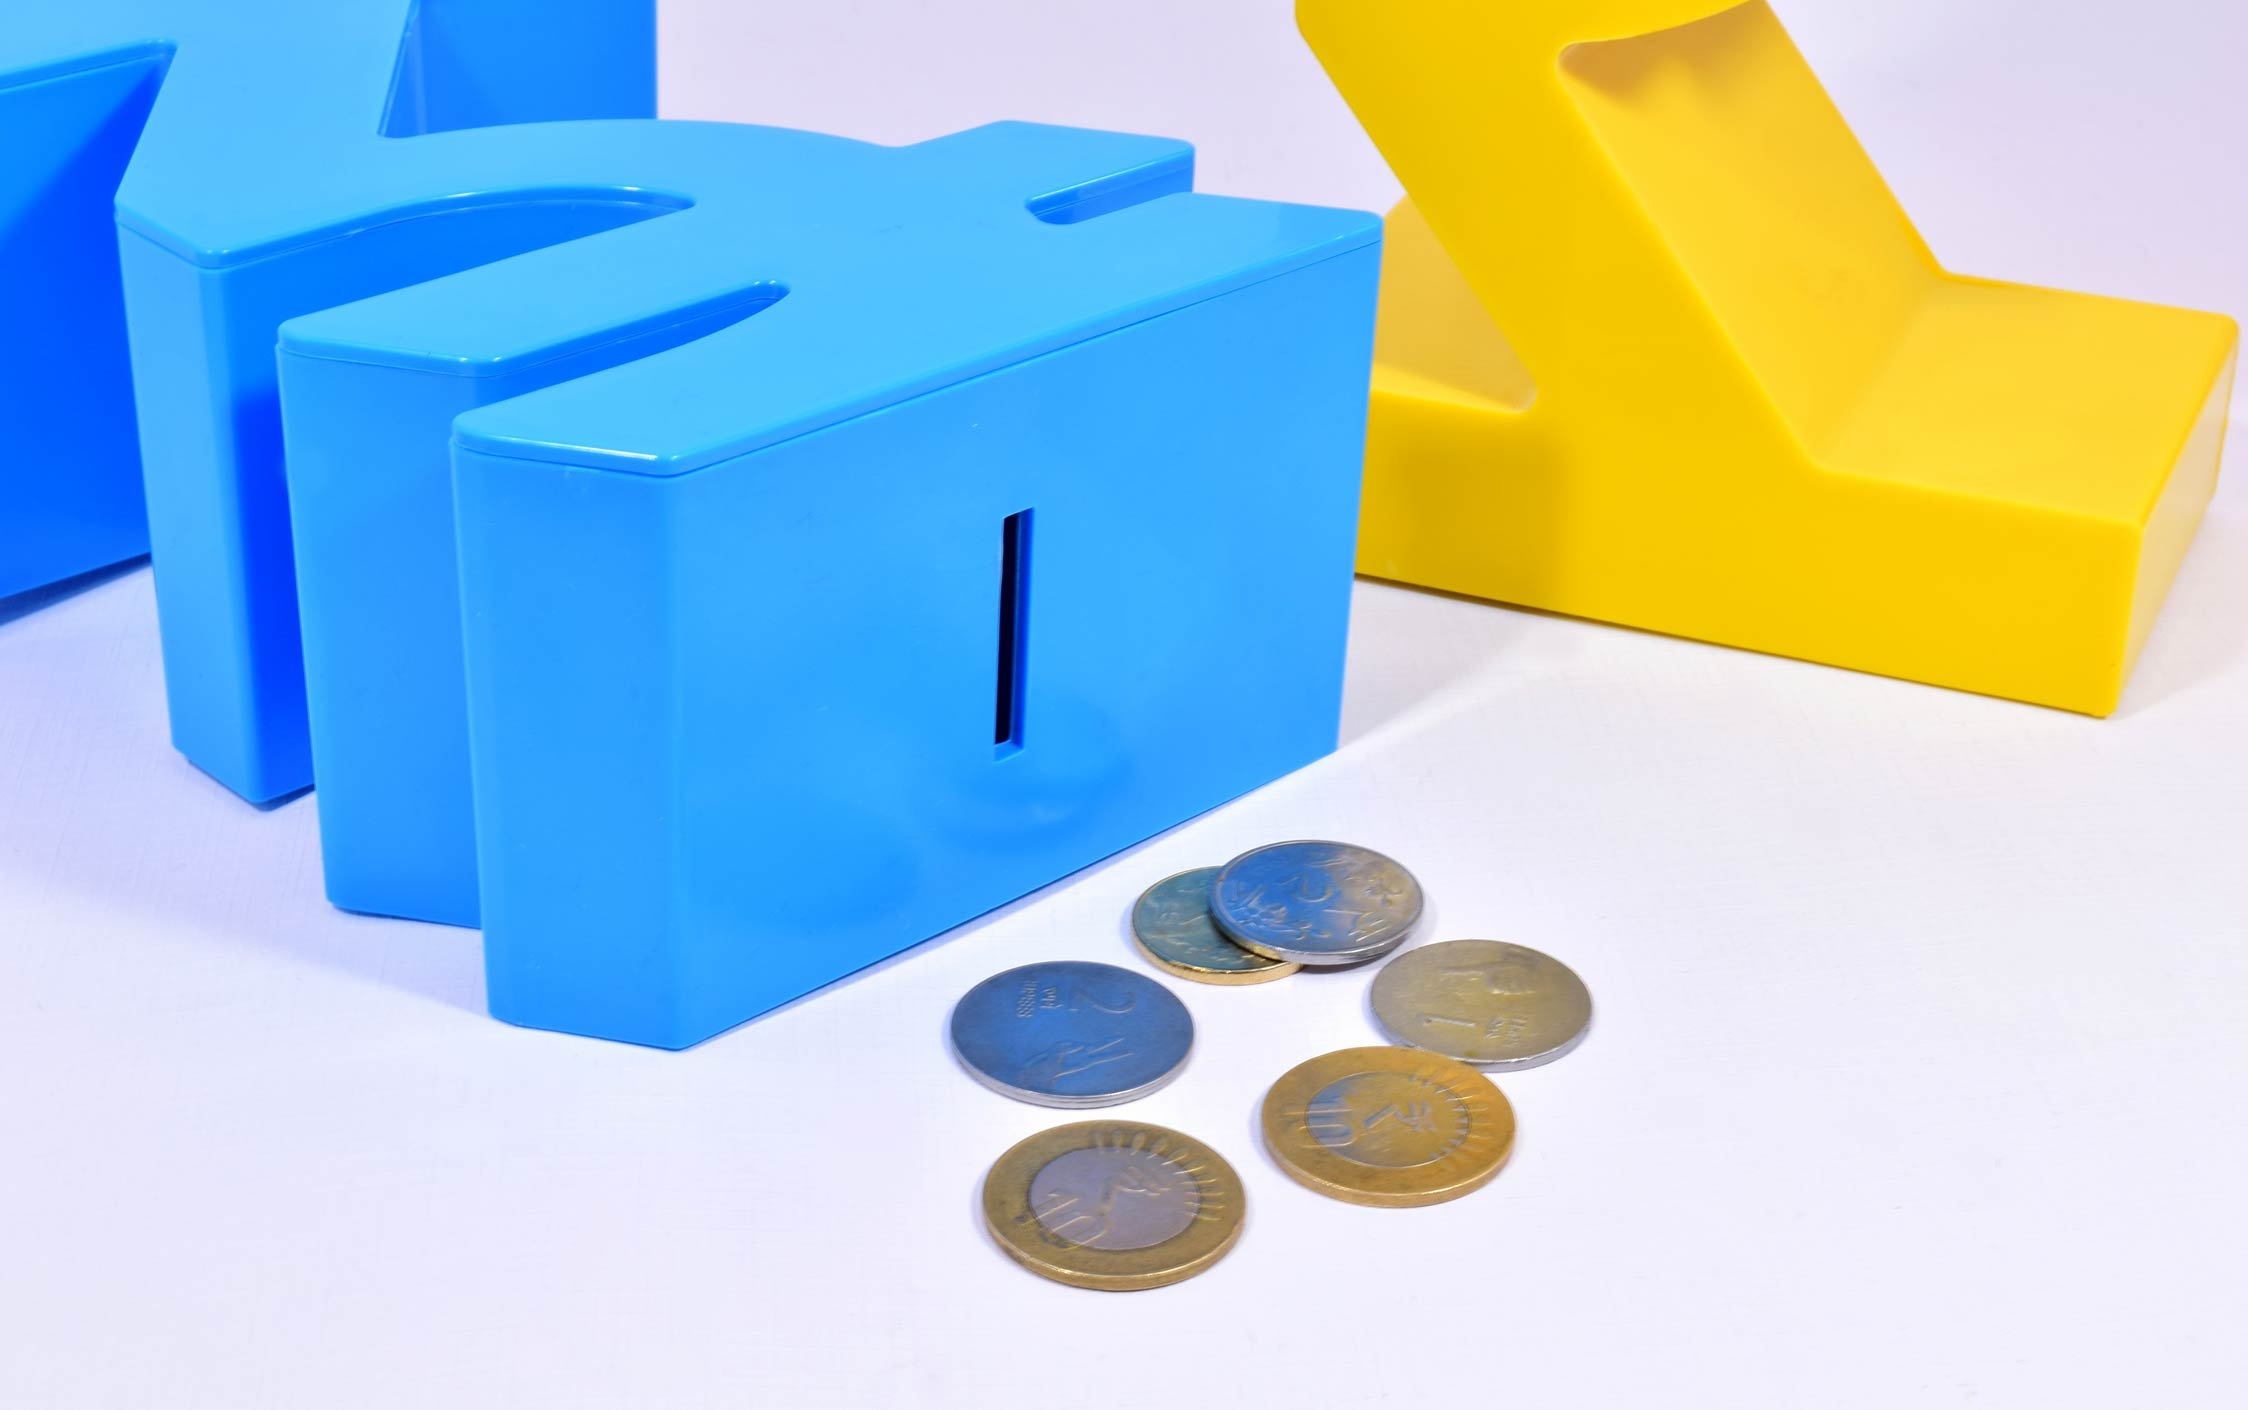 P09 - Rupee symbol style money bank